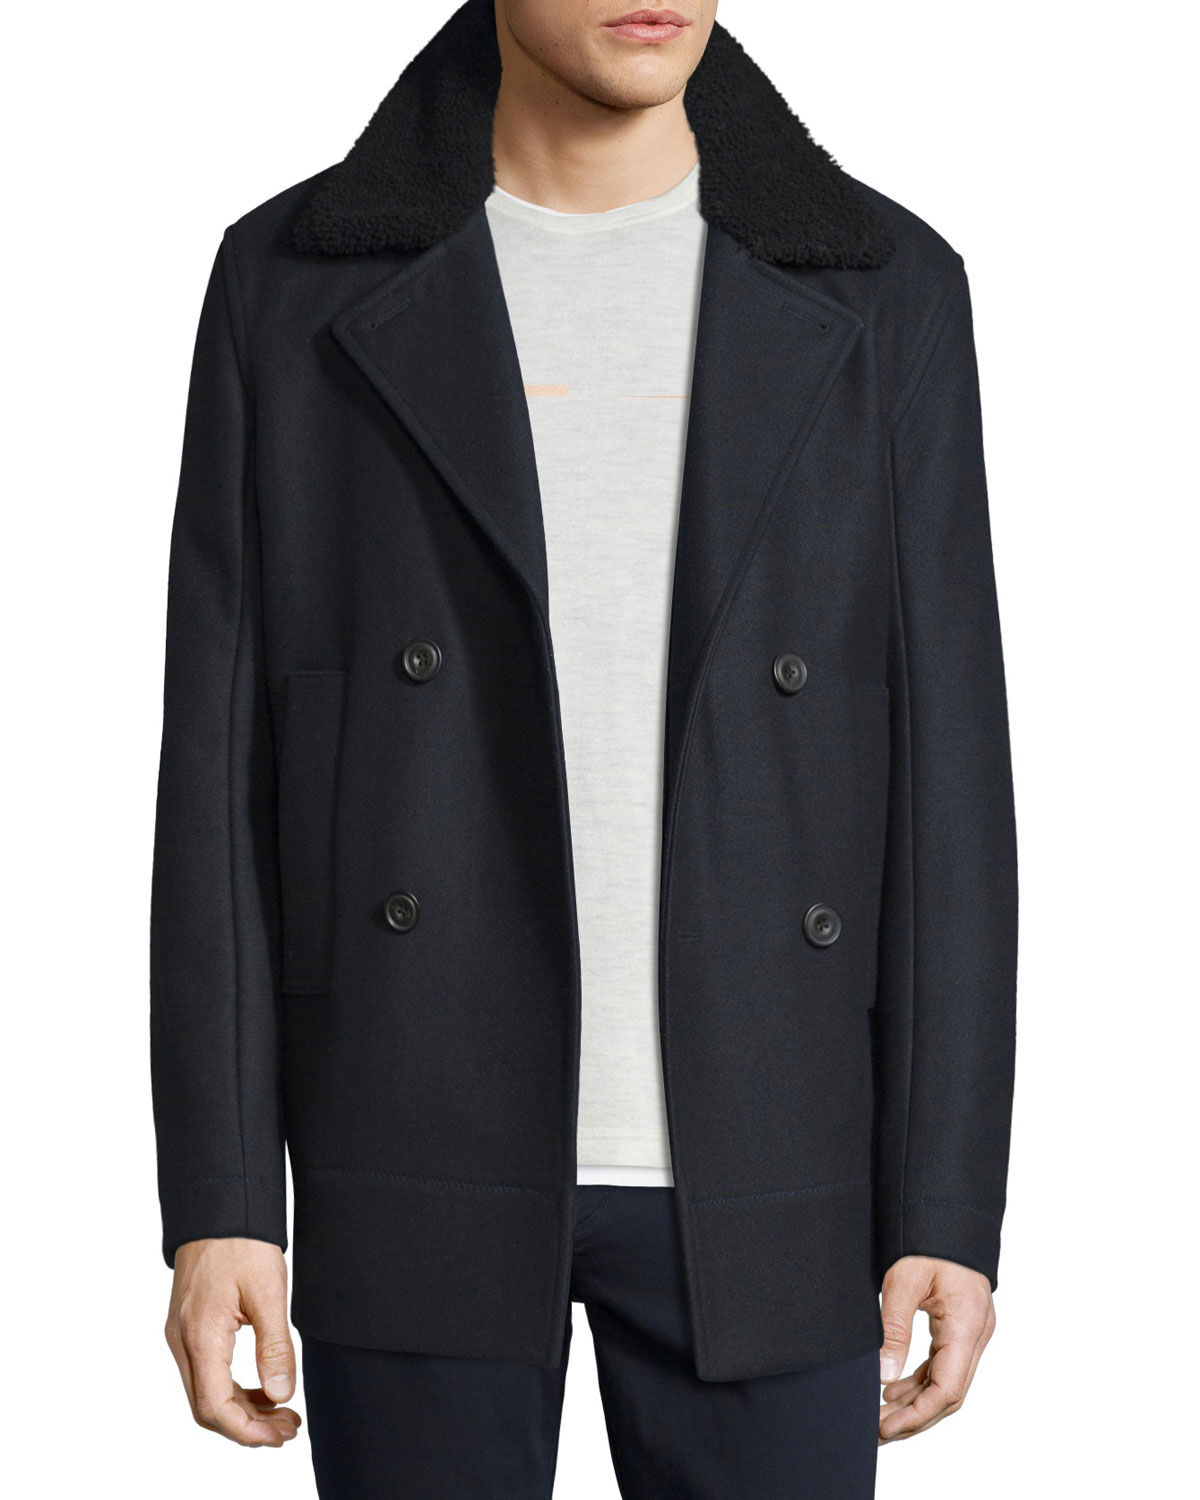 VL NWT VINCE WOOL BLEND WITH GENUINE SHEARLING COLLAR MEN PEACOAT SIZE L